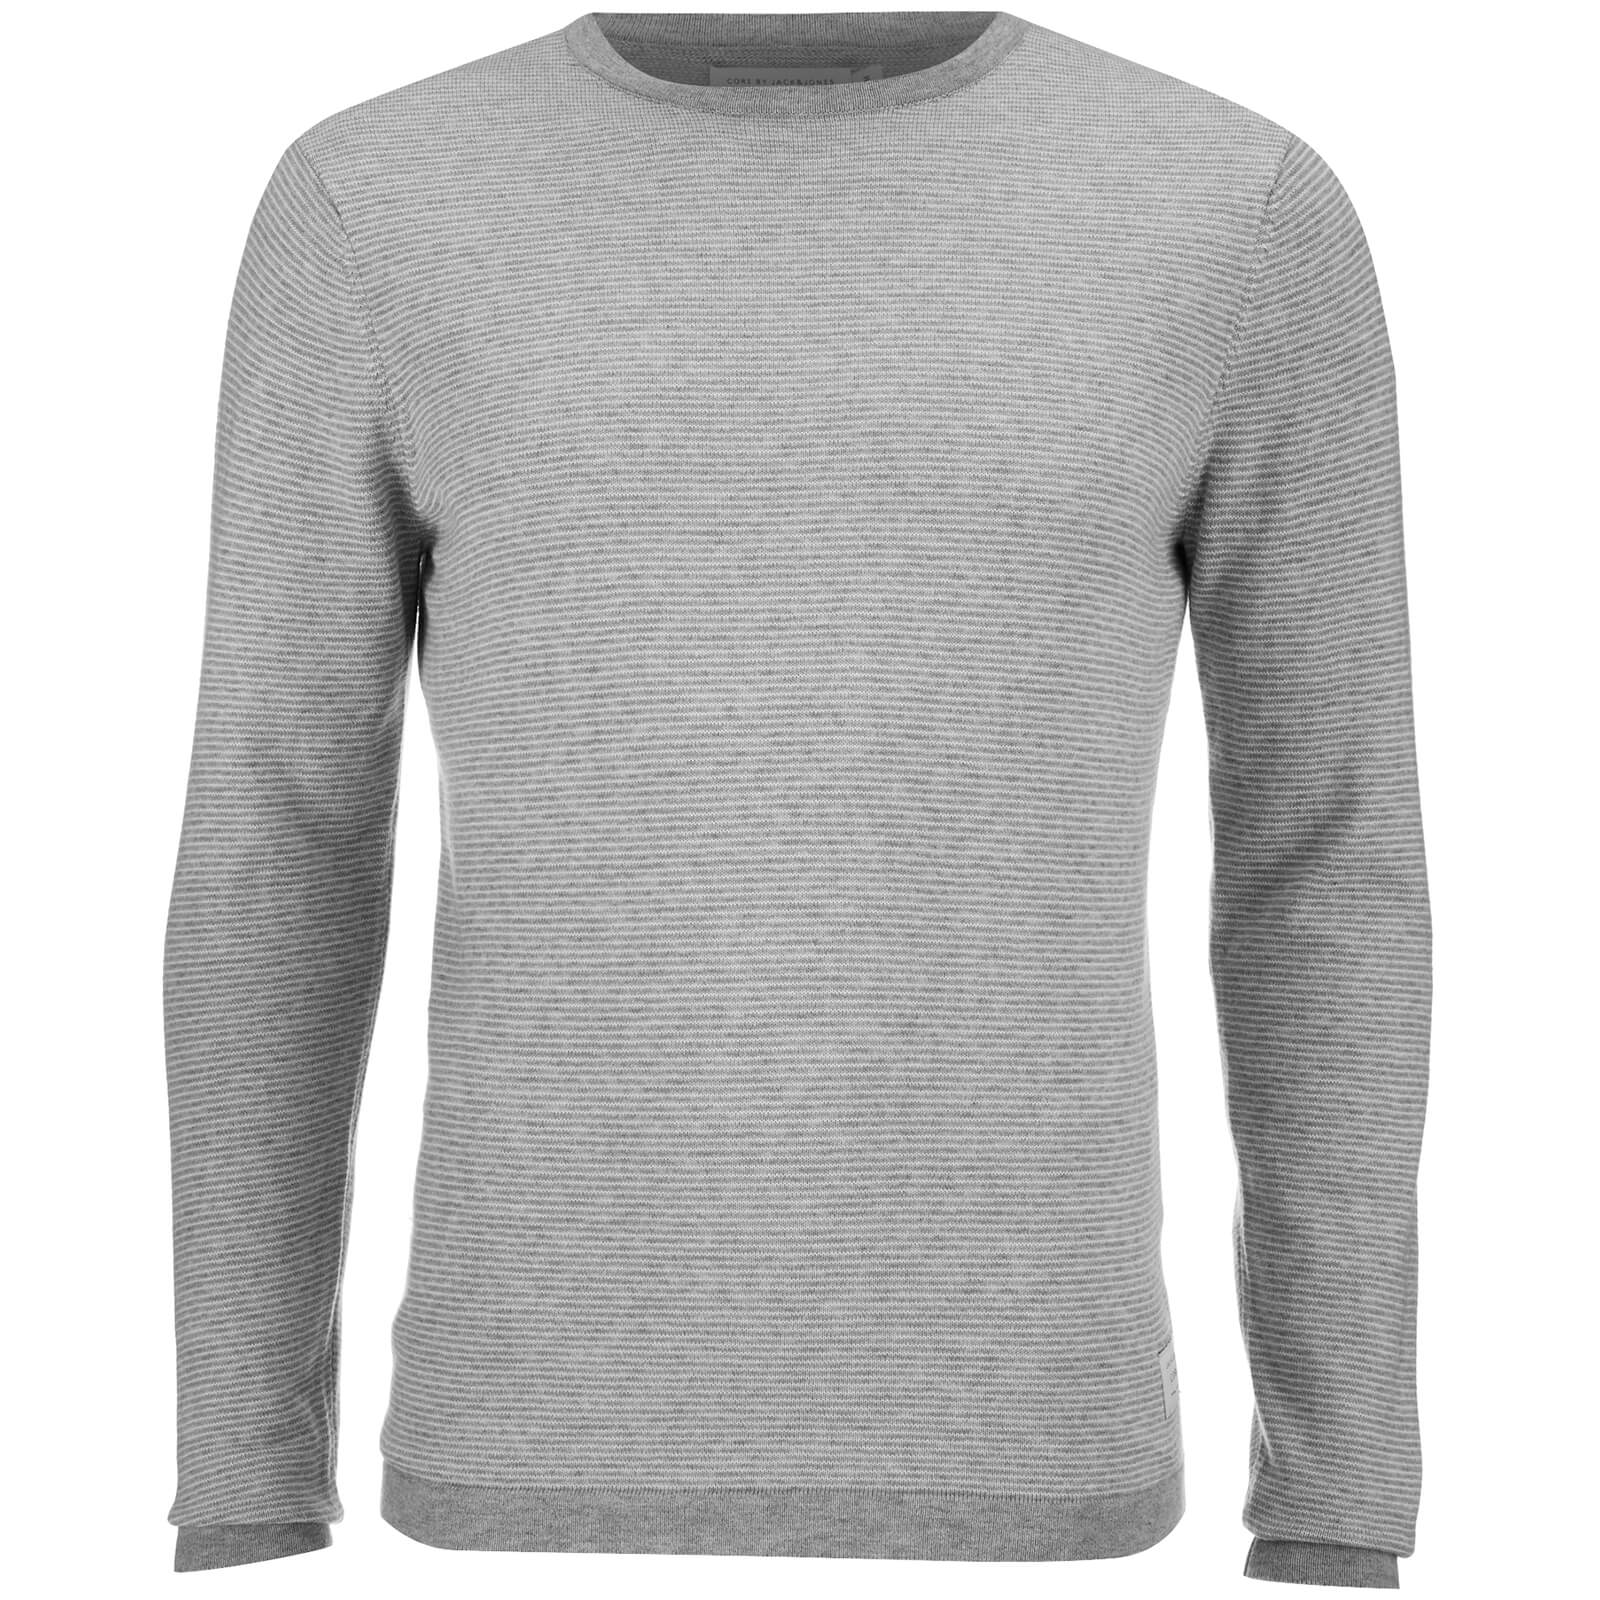 36b9b4ea8219 Description. Men s striped jumper from Jack   Jones with a fine knit  construction. Crafted from pure cotton